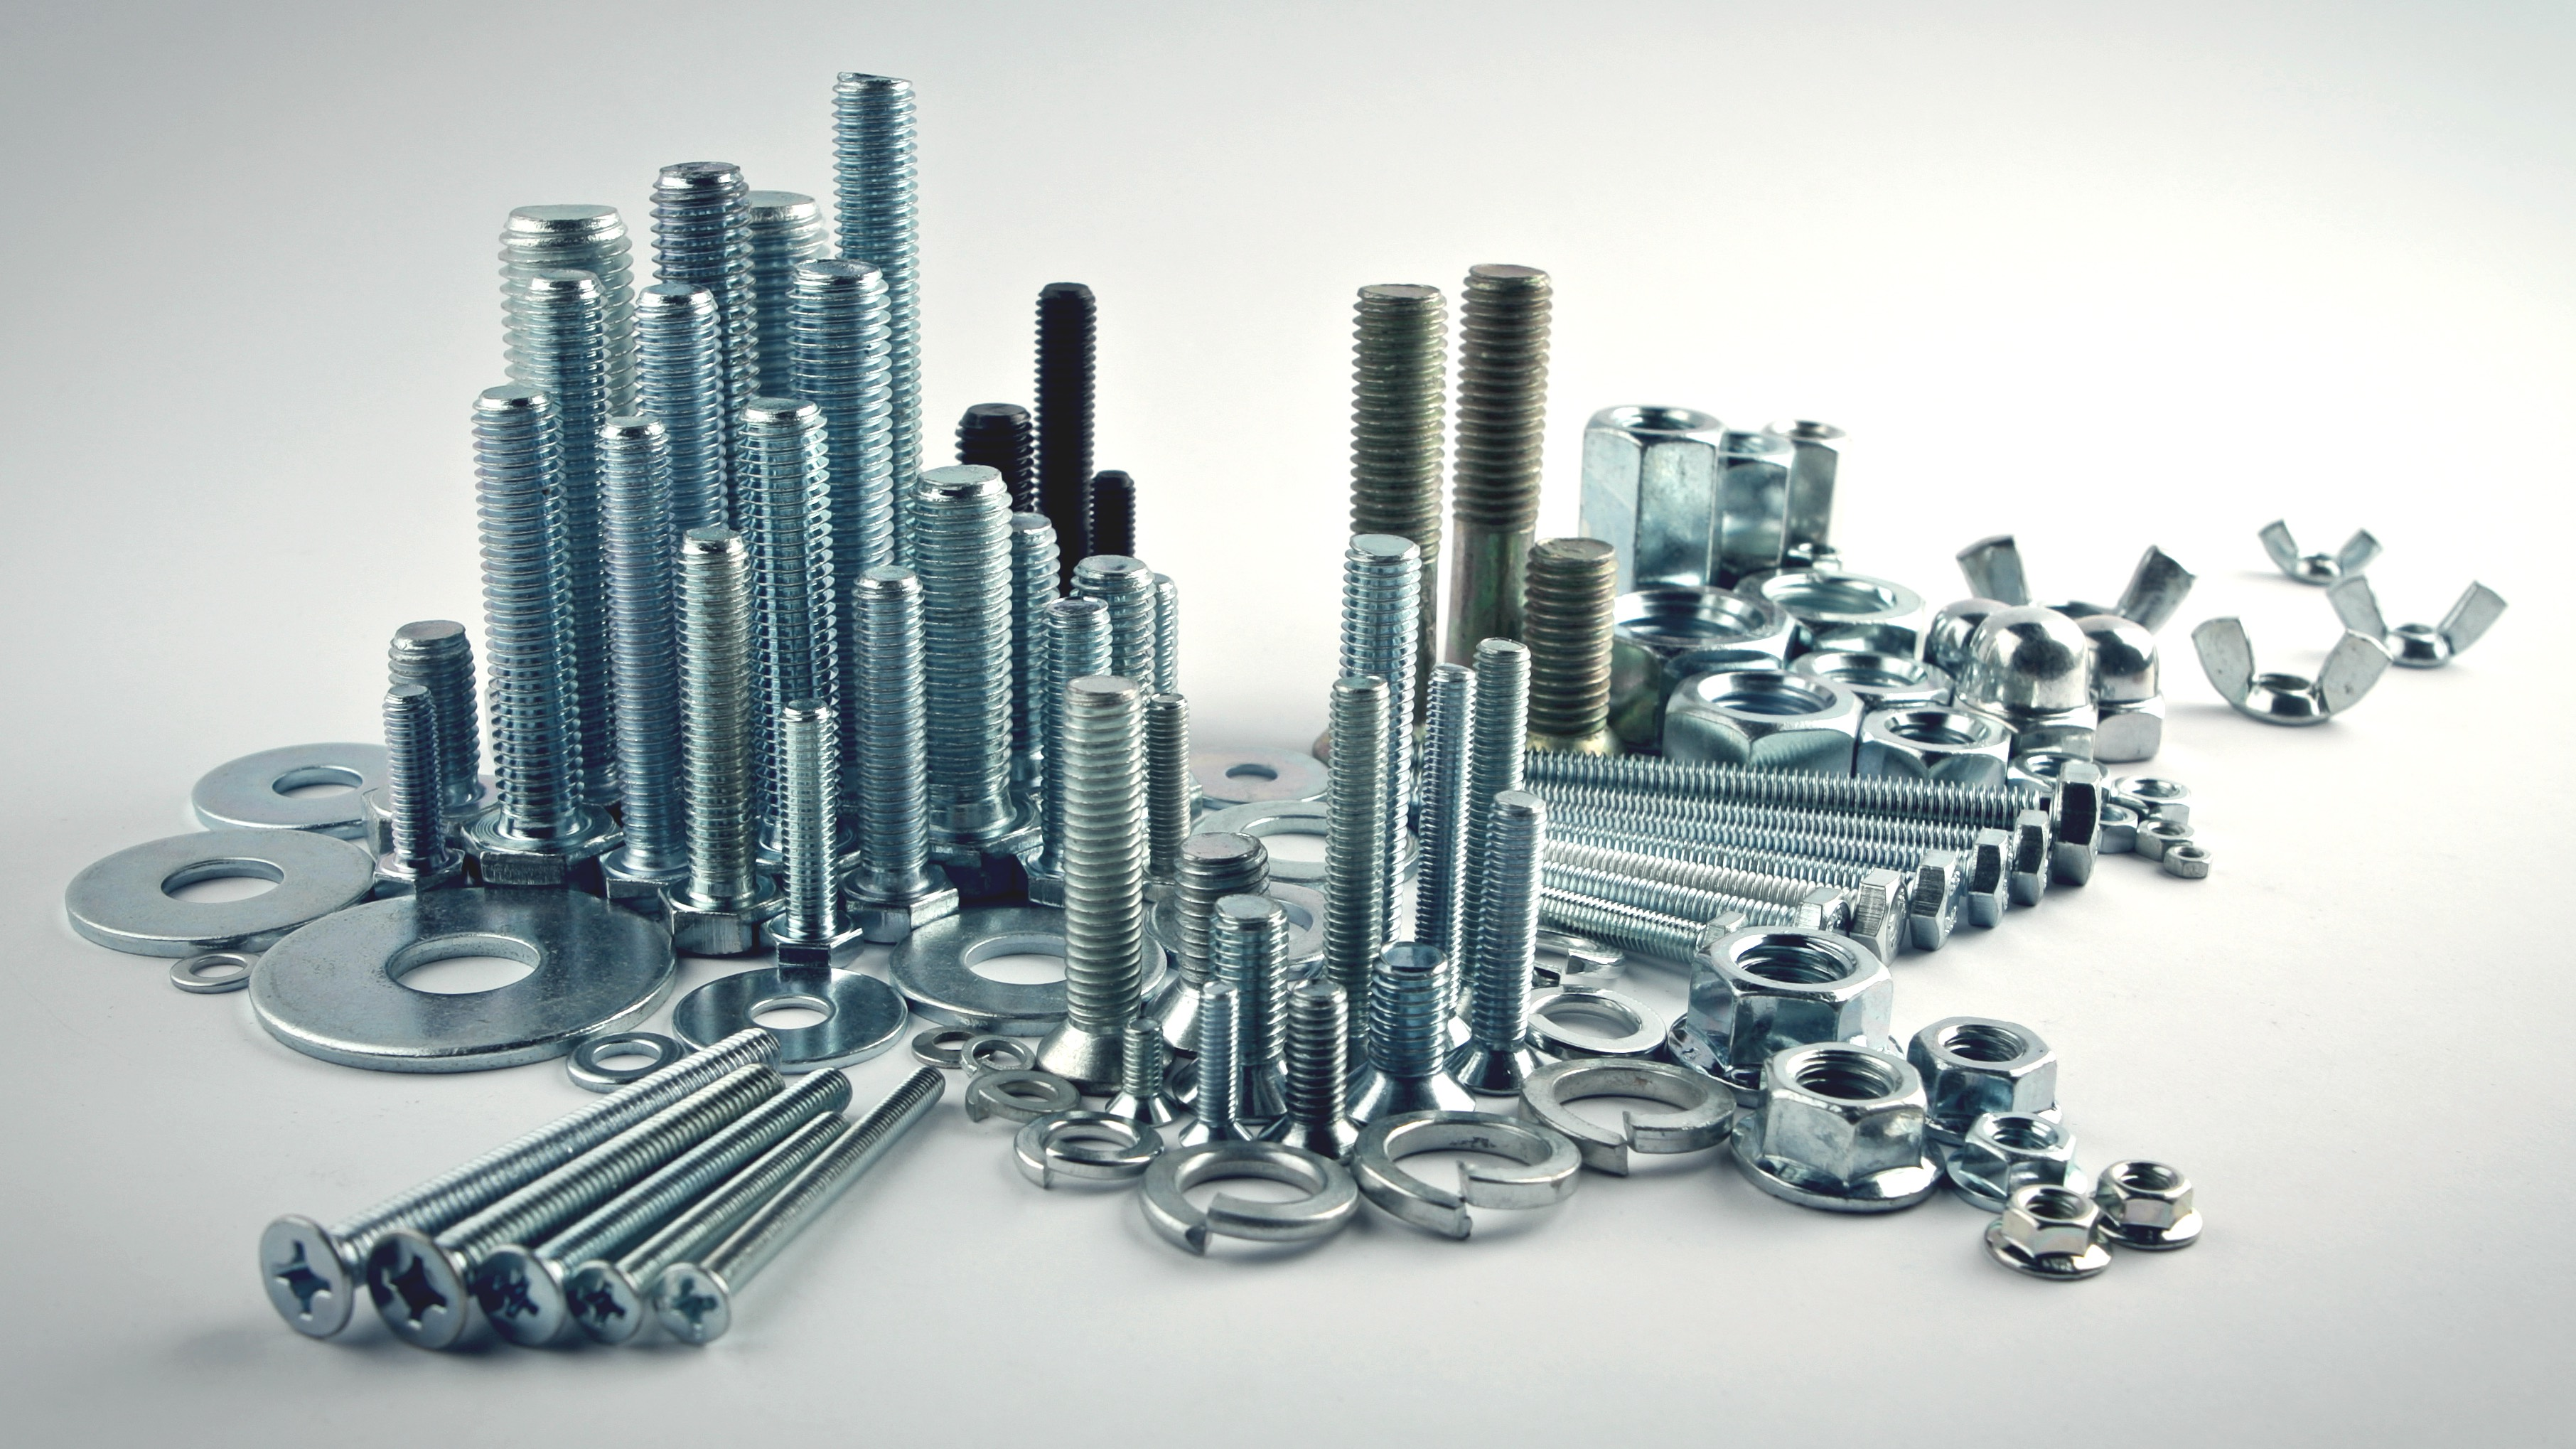 Hardware Distributor for Fasteners | Tengco Inc